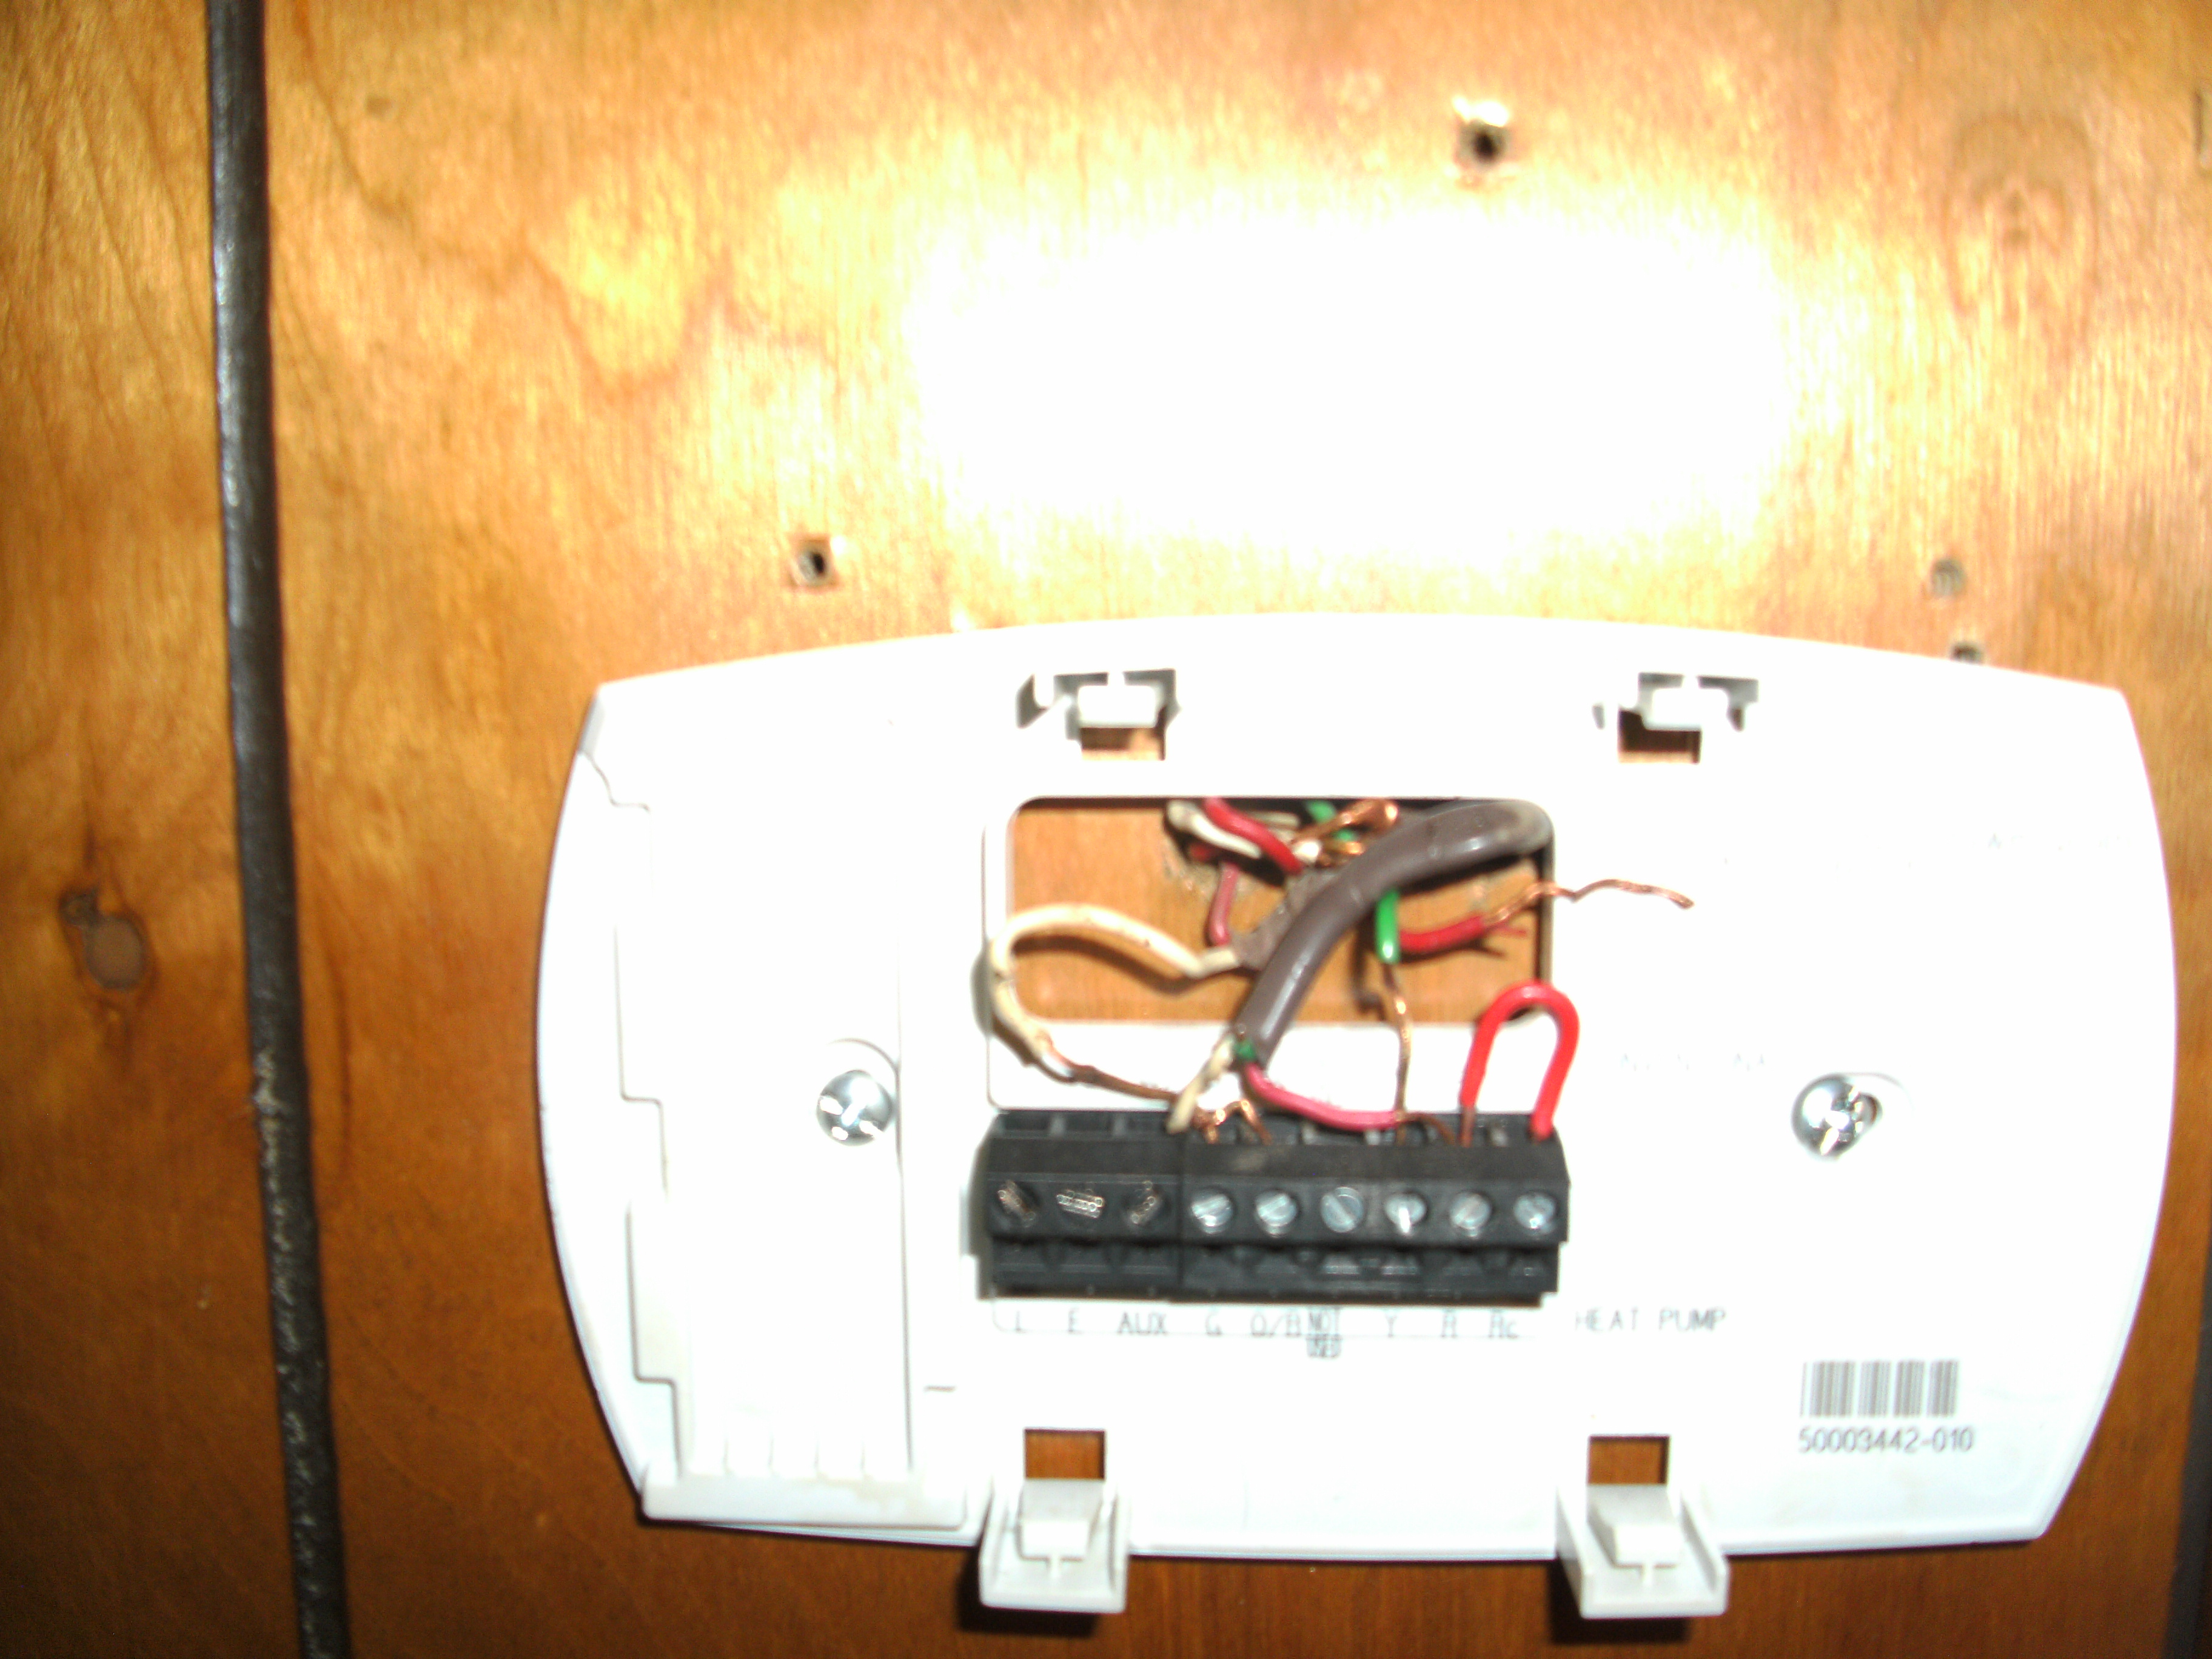 honeywell thermostat rth6350d wiring diagram green roof water runoff have a rth6350 wired as follows wires not original